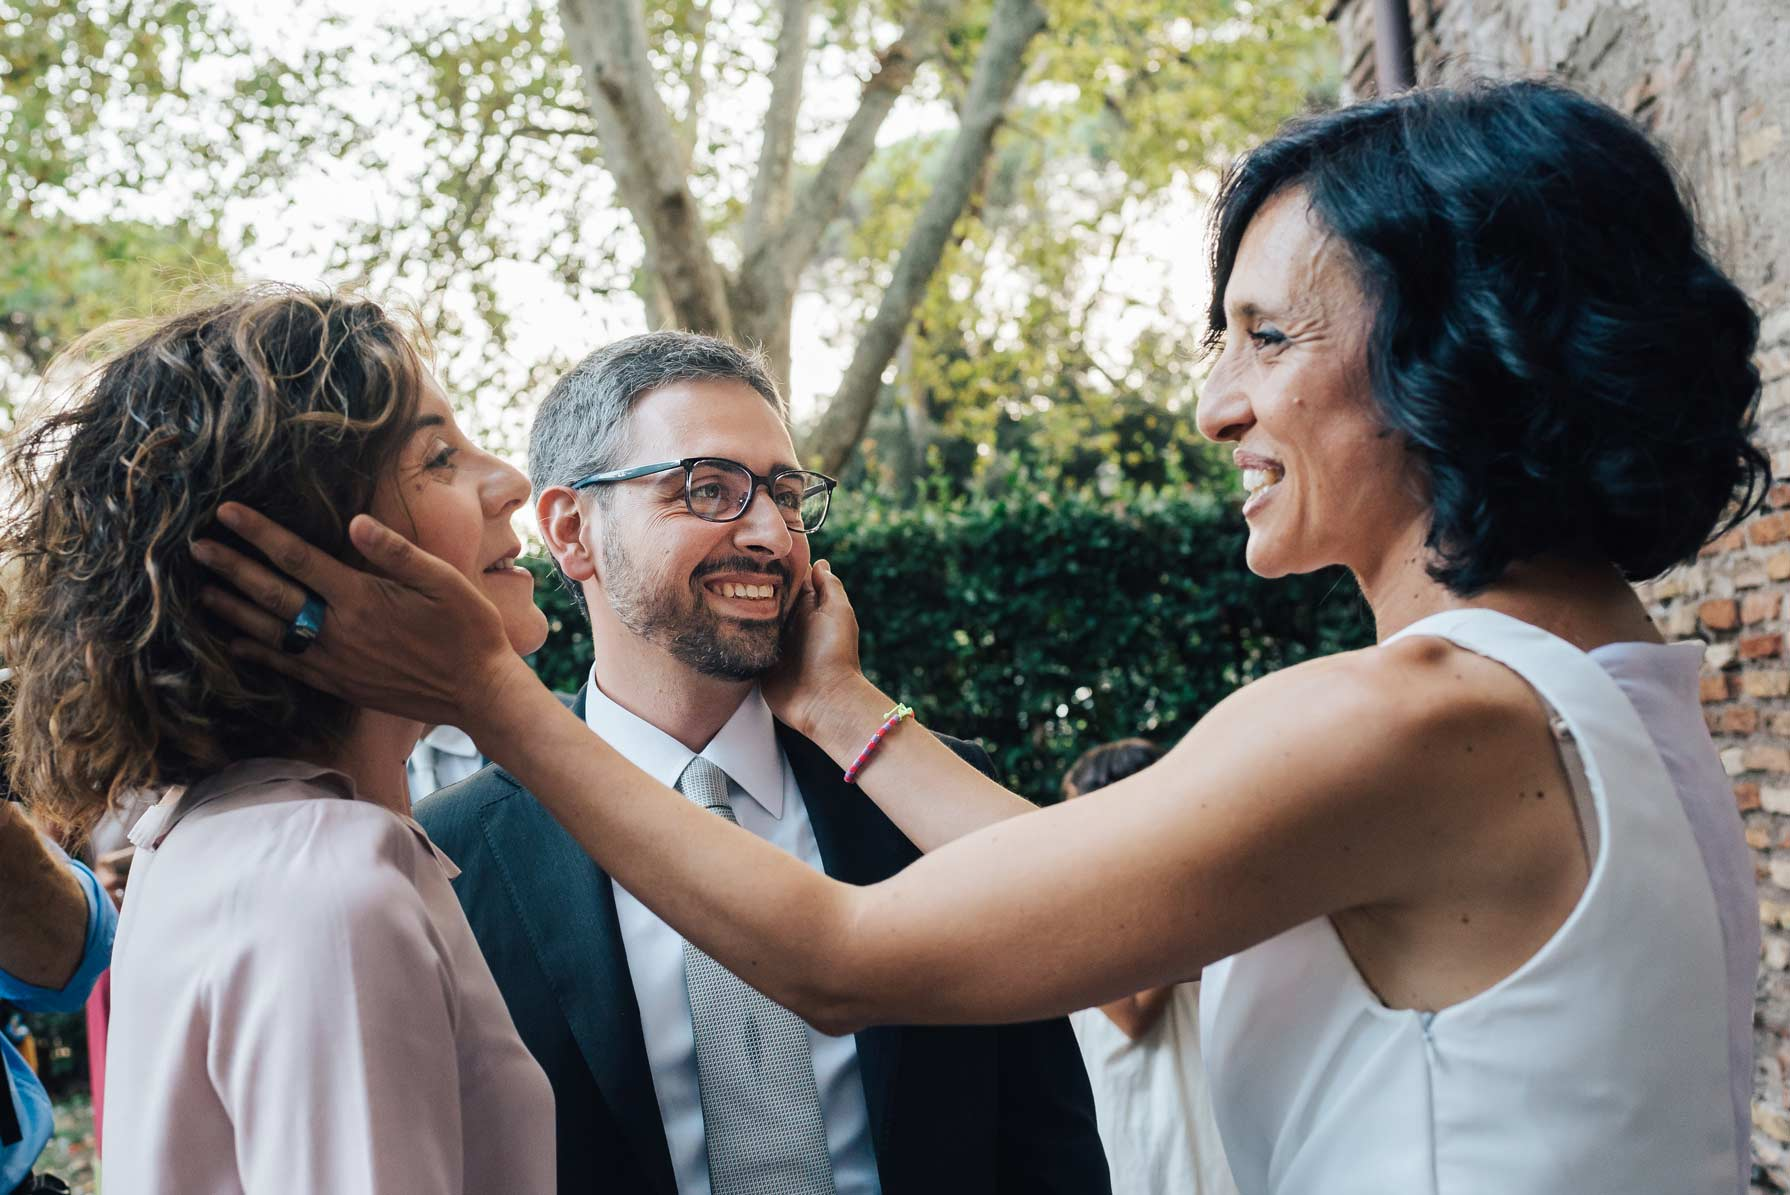 Reportage-Wedding-Photography-in-Italy-Ceremony